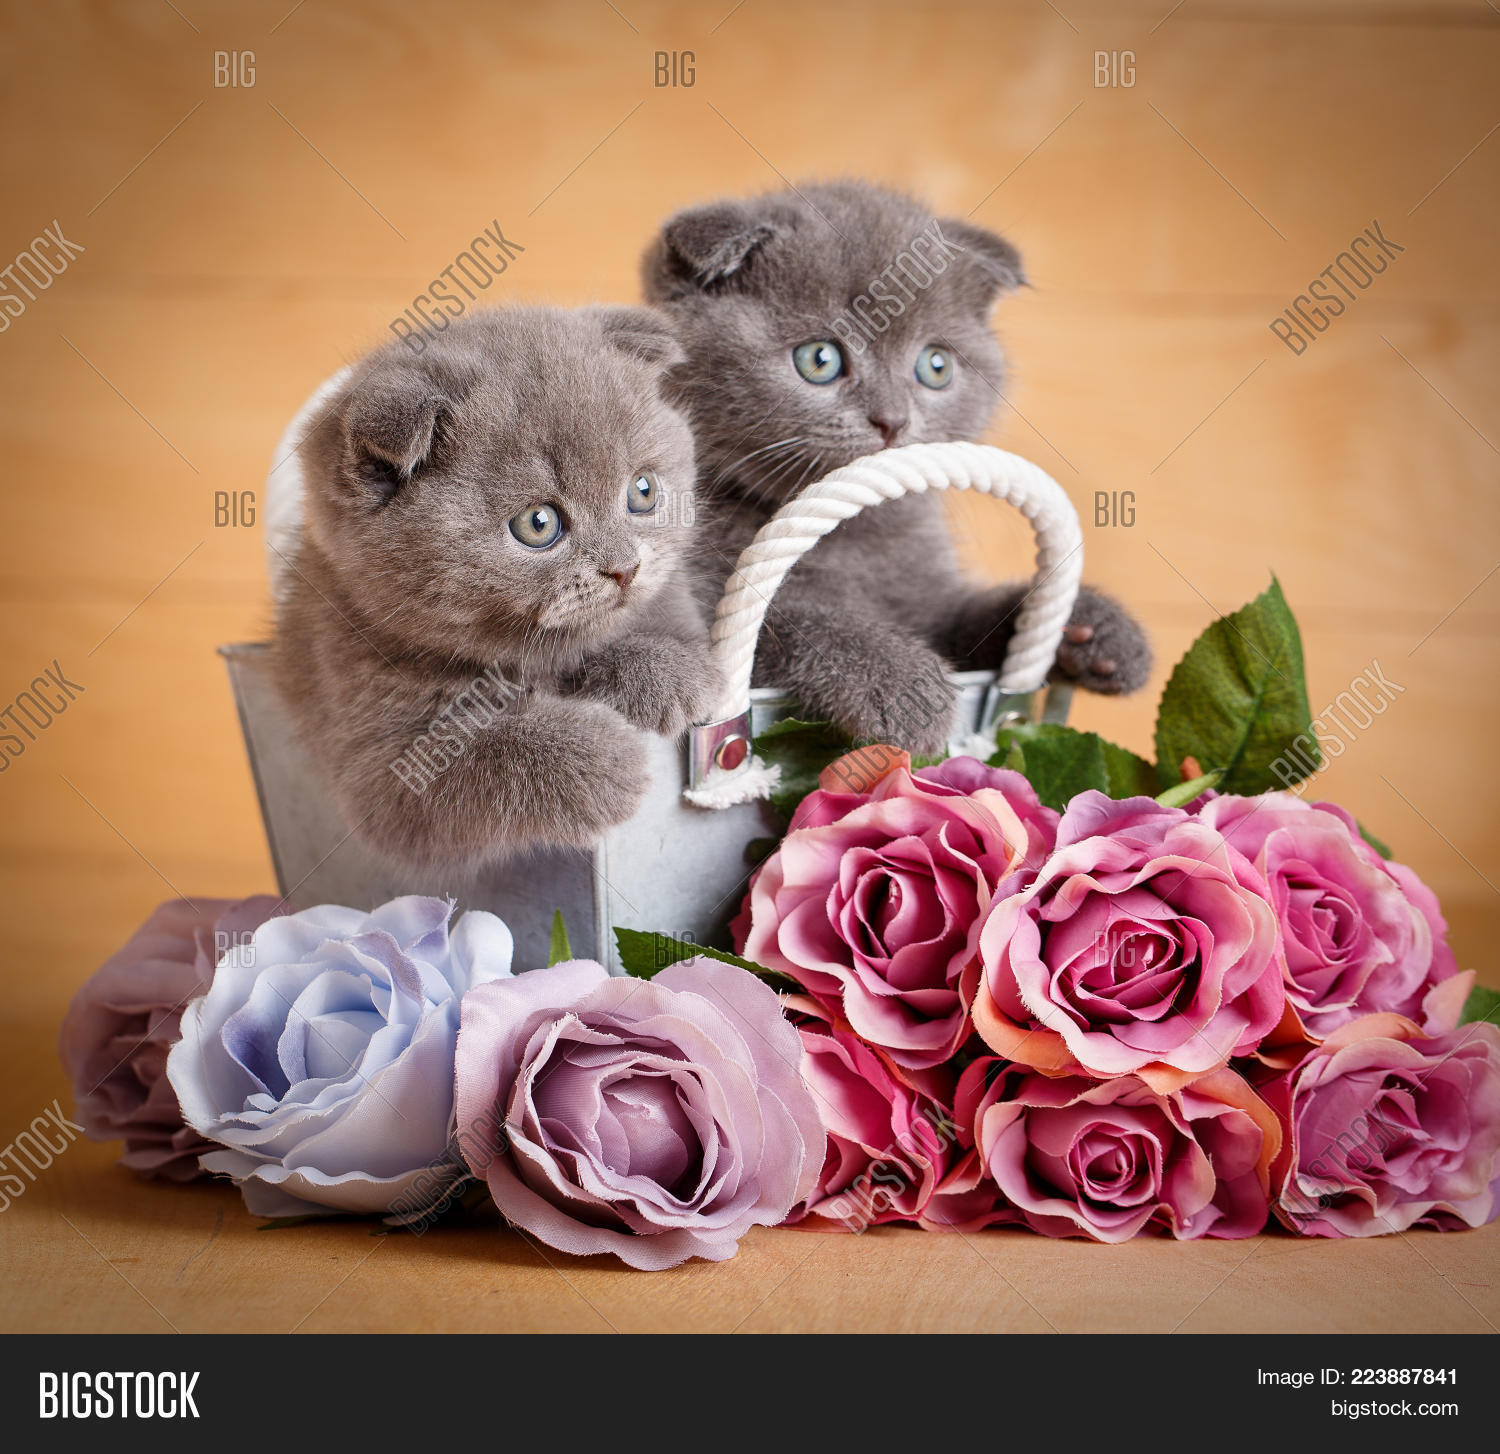 Kittens Scottish Cat Image Photo Free Trial Bigstock